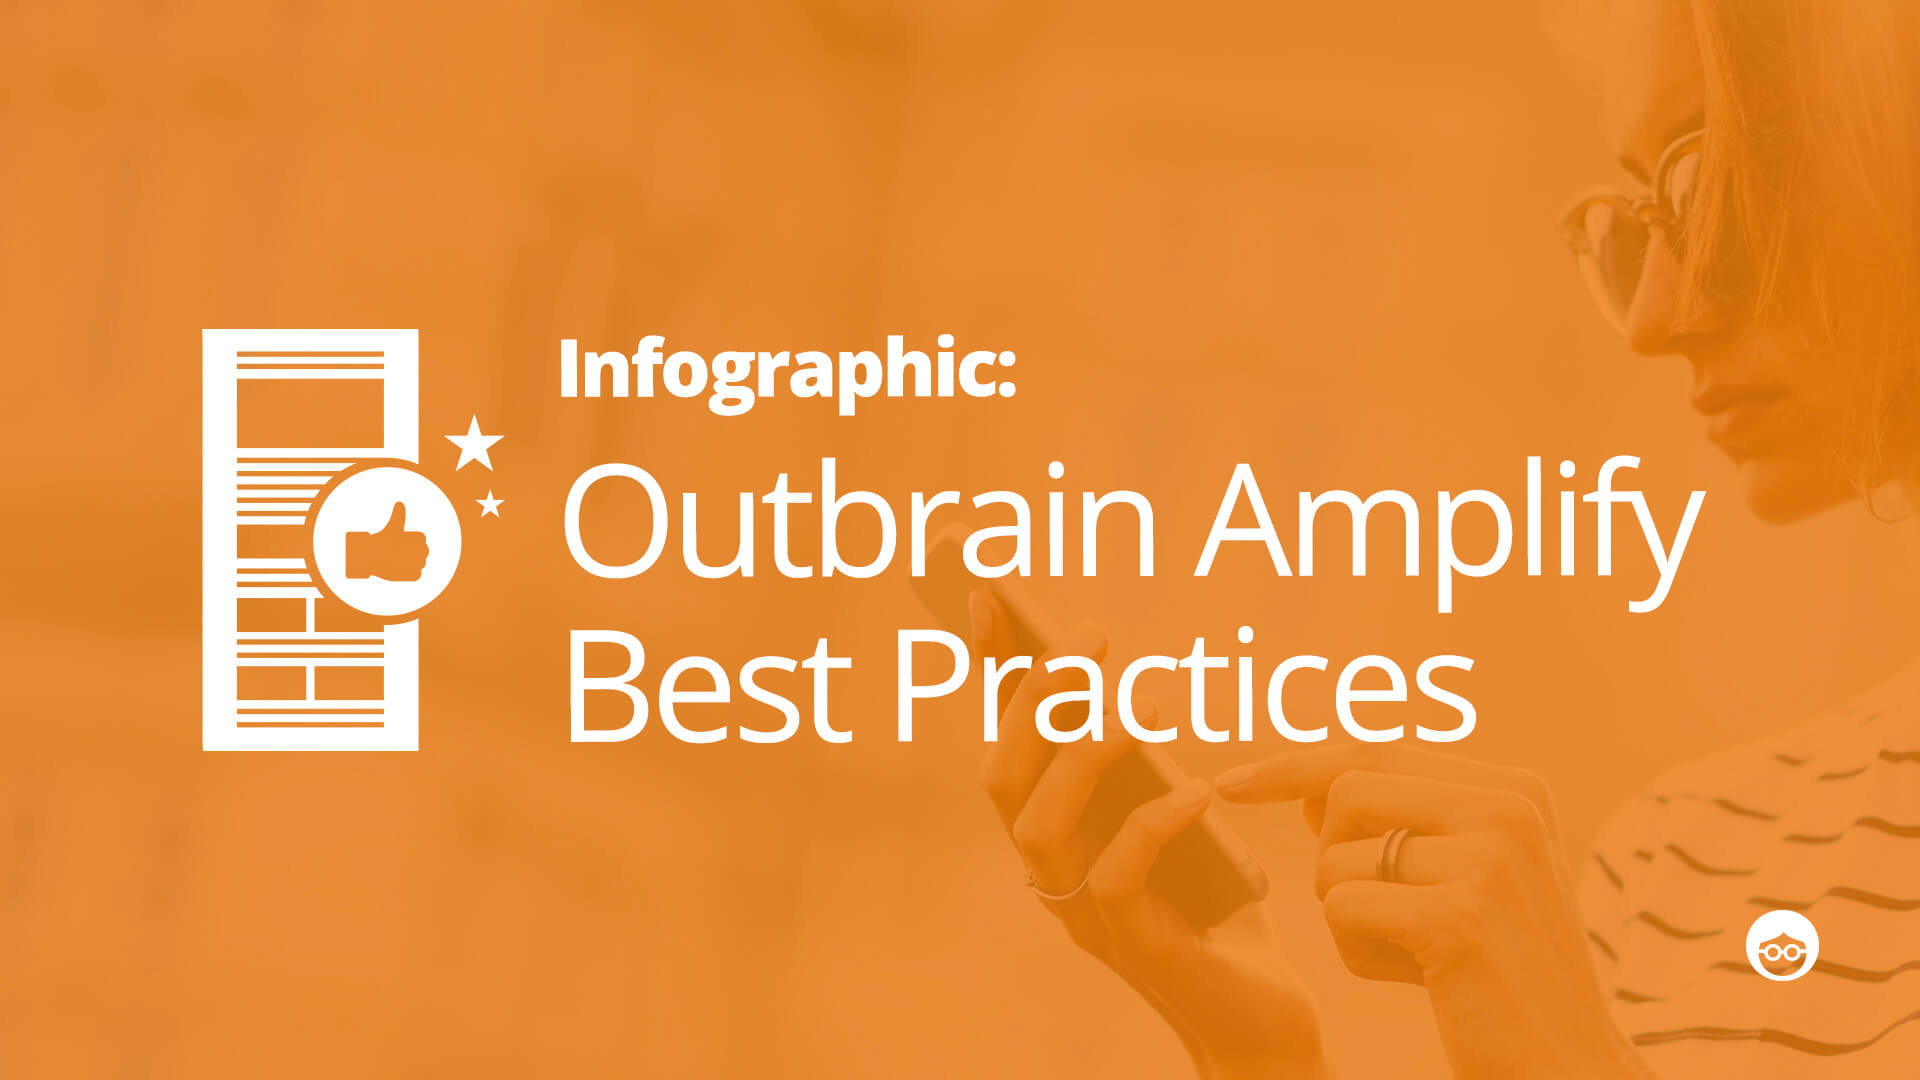 images and headlines best practices